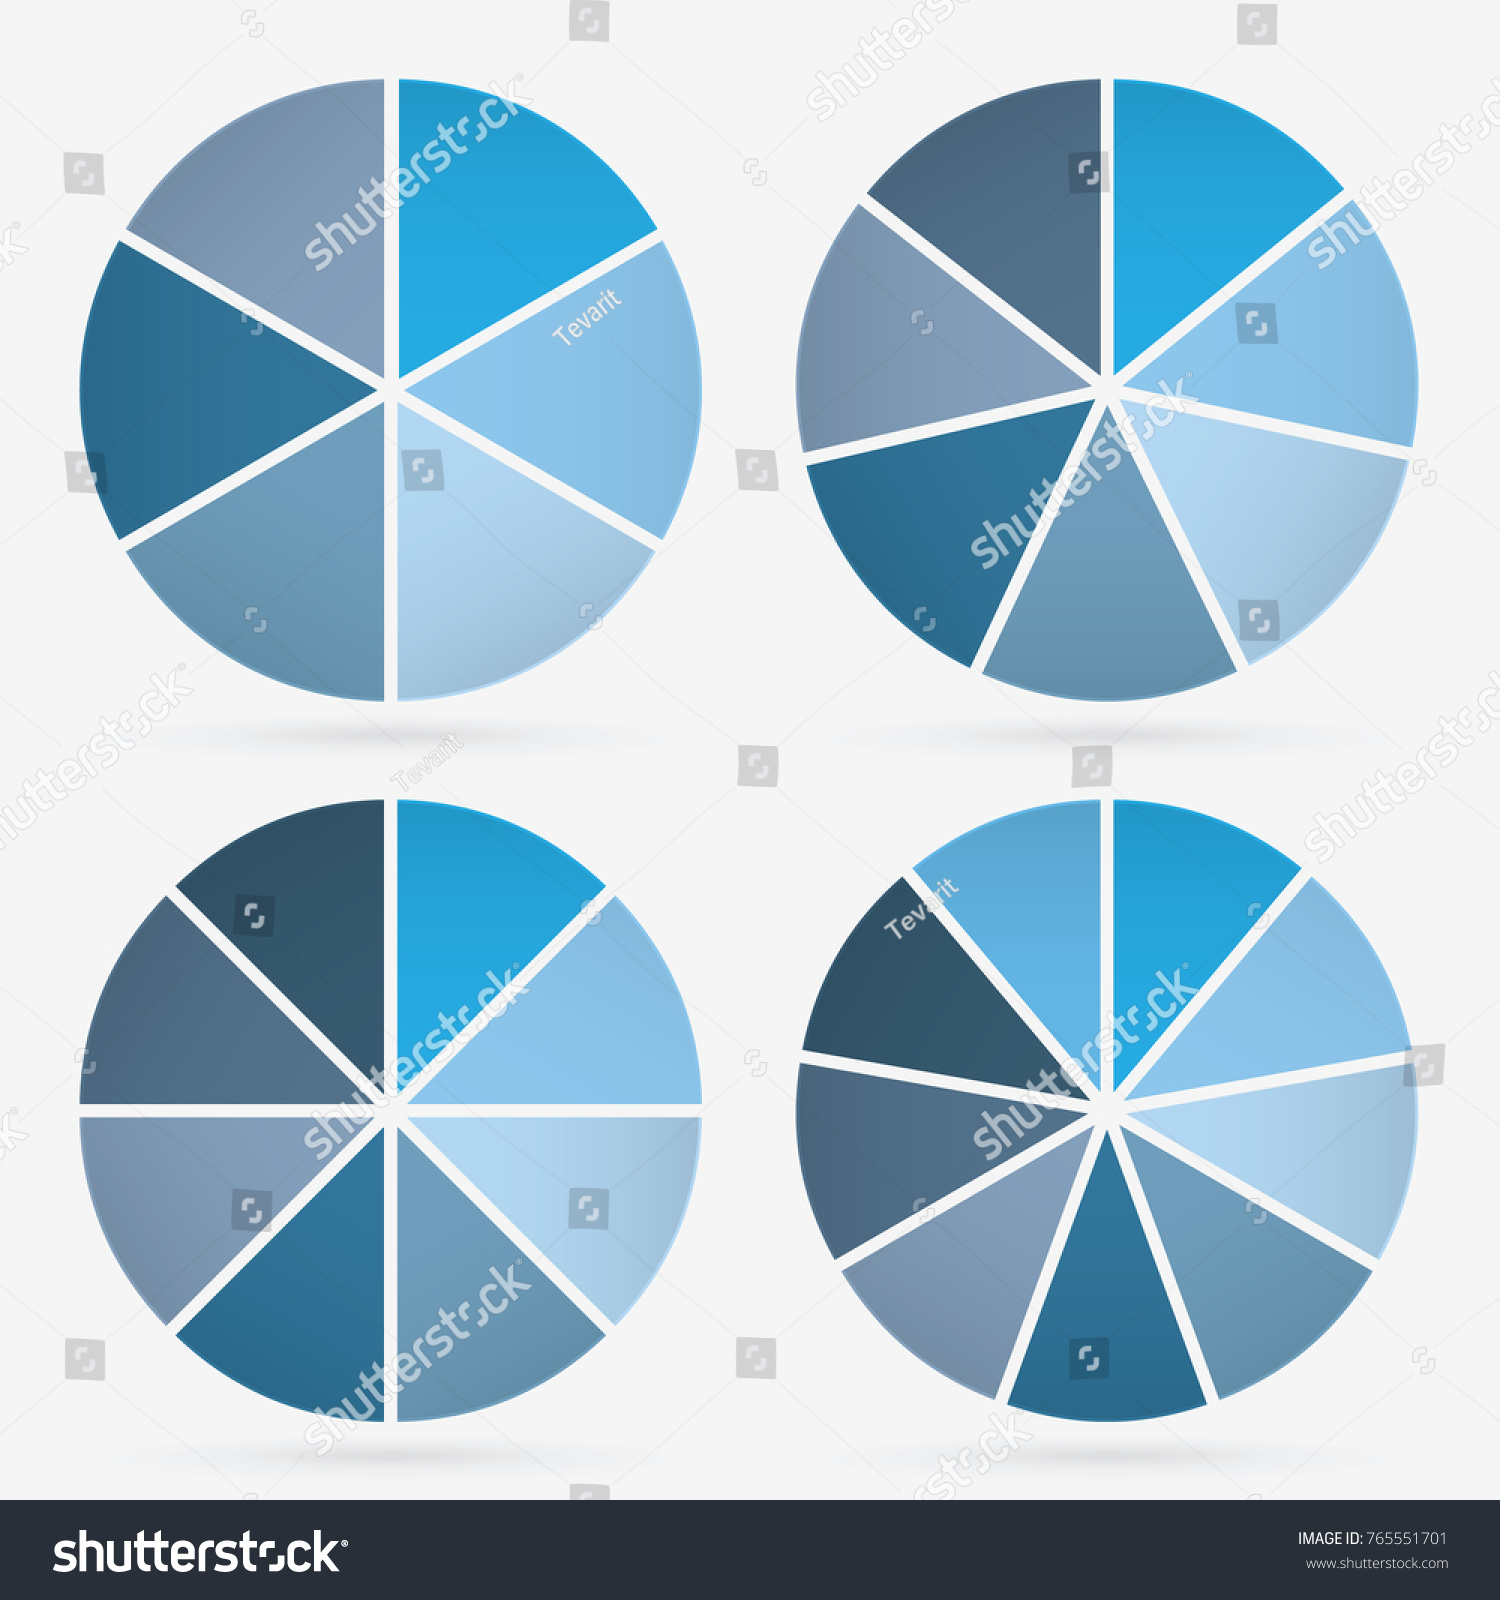 Info template pie charts blue 6 stock vector 765551701 shutterstock info template pie charts blue with 6 7 8 9 steps nvjuhfo Images